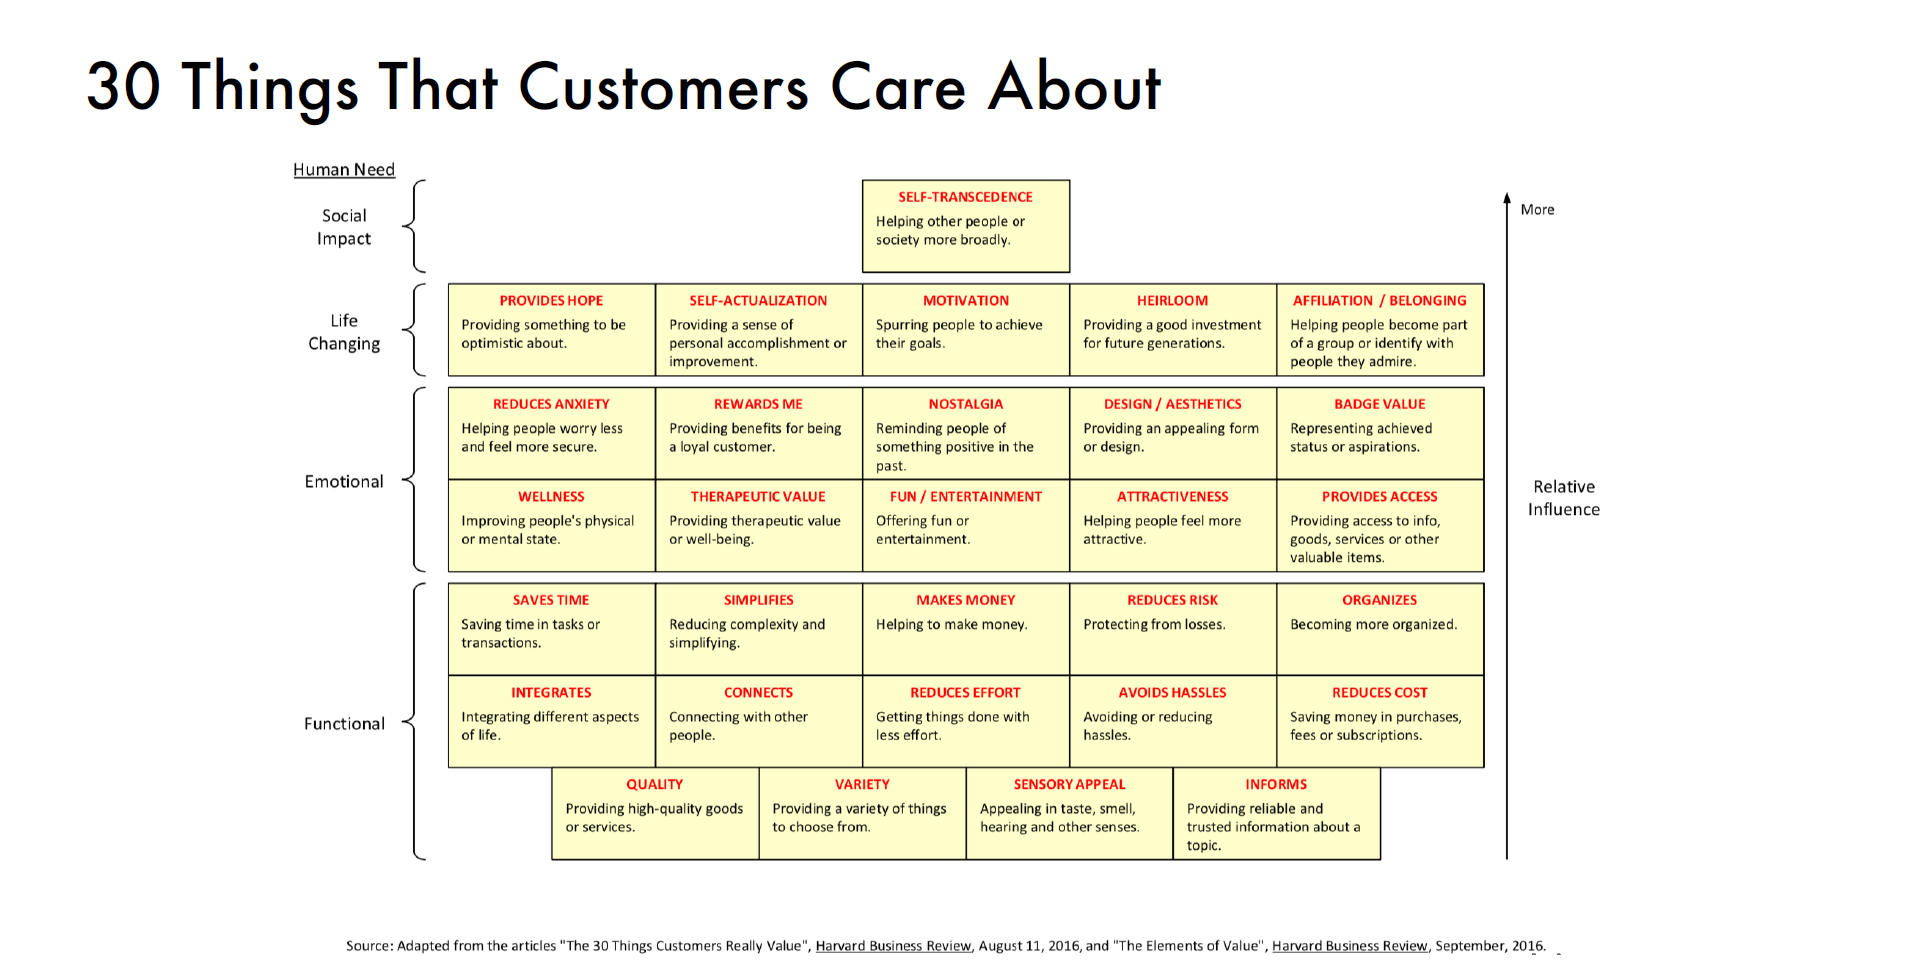 Things that customers care about